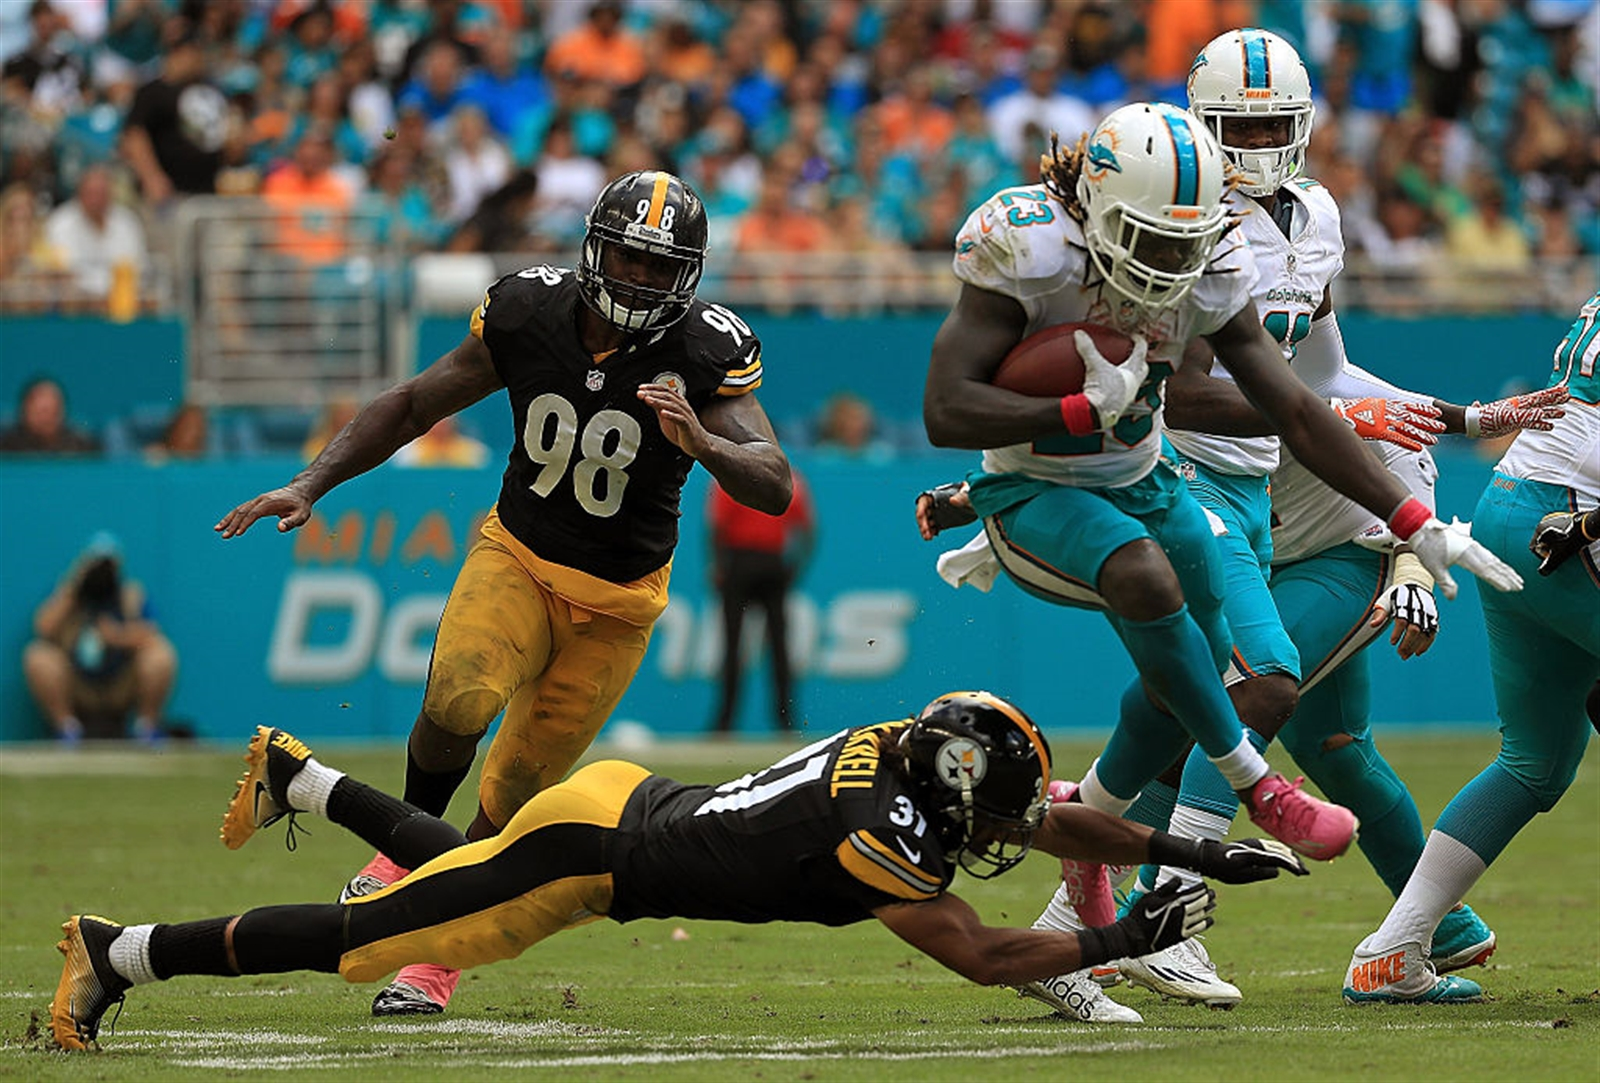 When the Dolphins run: Jay Ajayi (right), who was benched for Miamiu2019s season-opener in Seattle, has worked his way out of the doghouse. He carried 25 times for 204 yards in the Dolphinsu2019 upset win over Pittsburgh last week, the first 200-yard game for a running back this season. Ajayiu2019s previous career high in a single game was 48 yards, so heu2019ll have to prove his performance against the Steelers was more than a fluke. ...